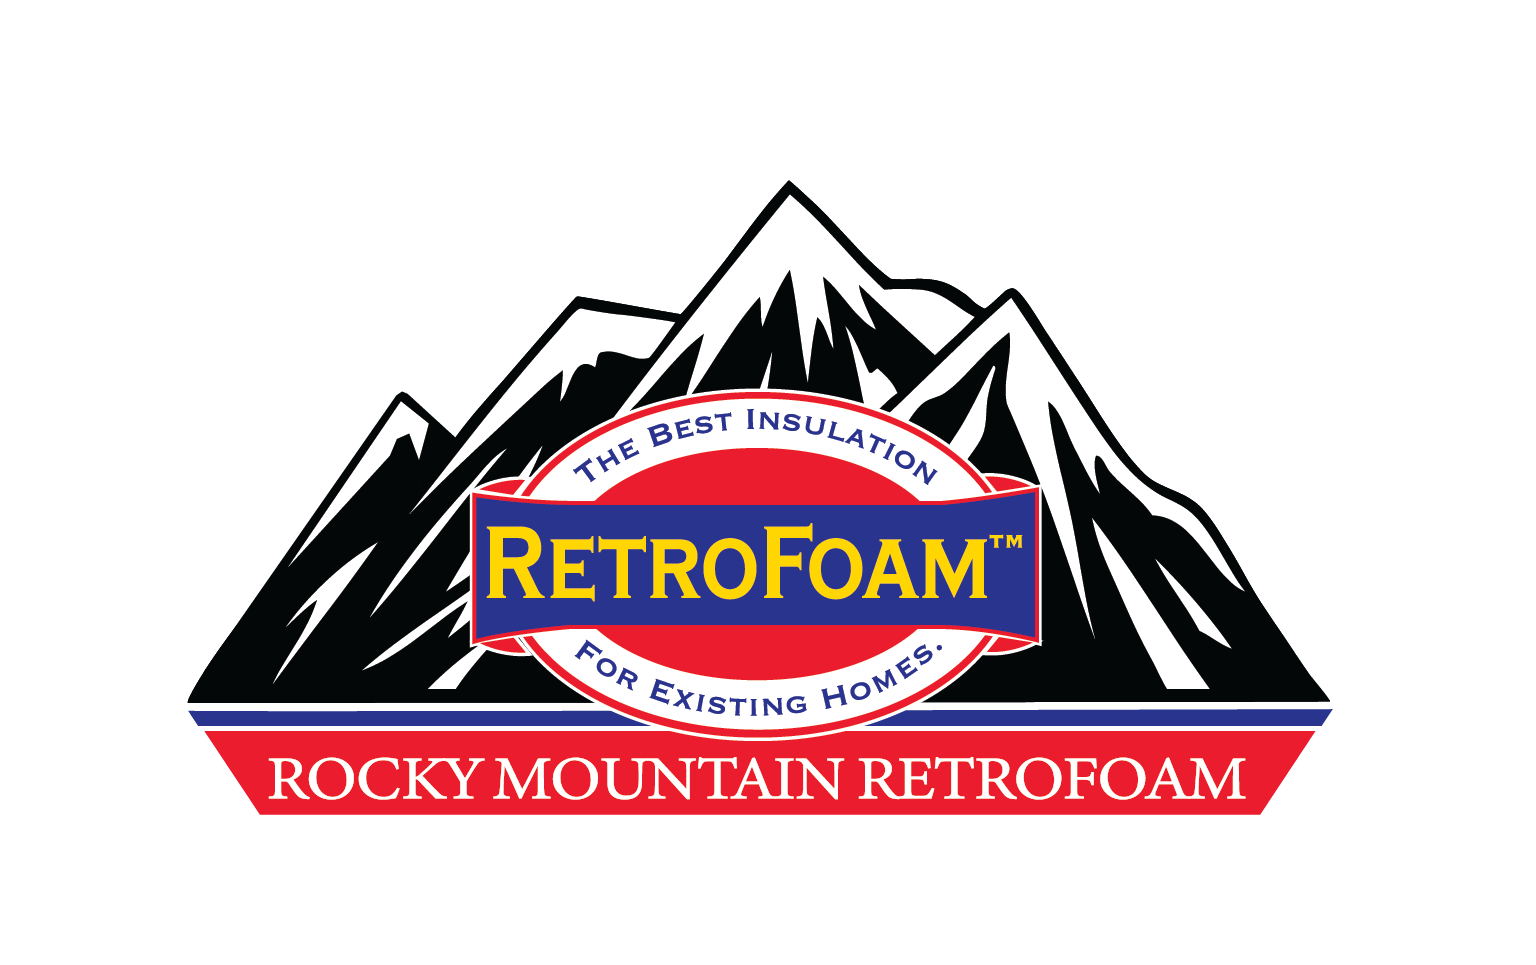 Rocky Mountain Retrofoam Best Insulation Wall Insulation Rocky